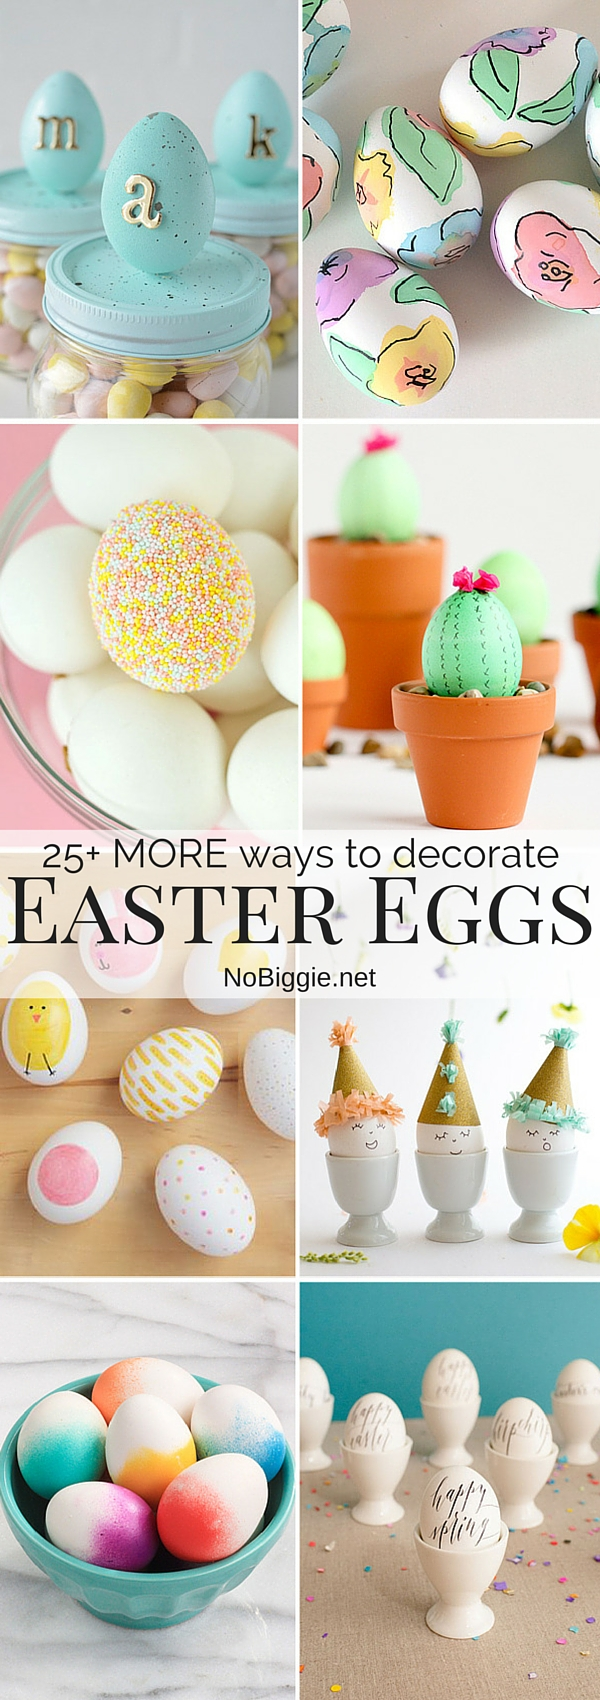 25+ MORE Ways to decorate Easter Eggs! #Easter #EasterEggs #CreativeEasterEggs #DecorateEasterEggs